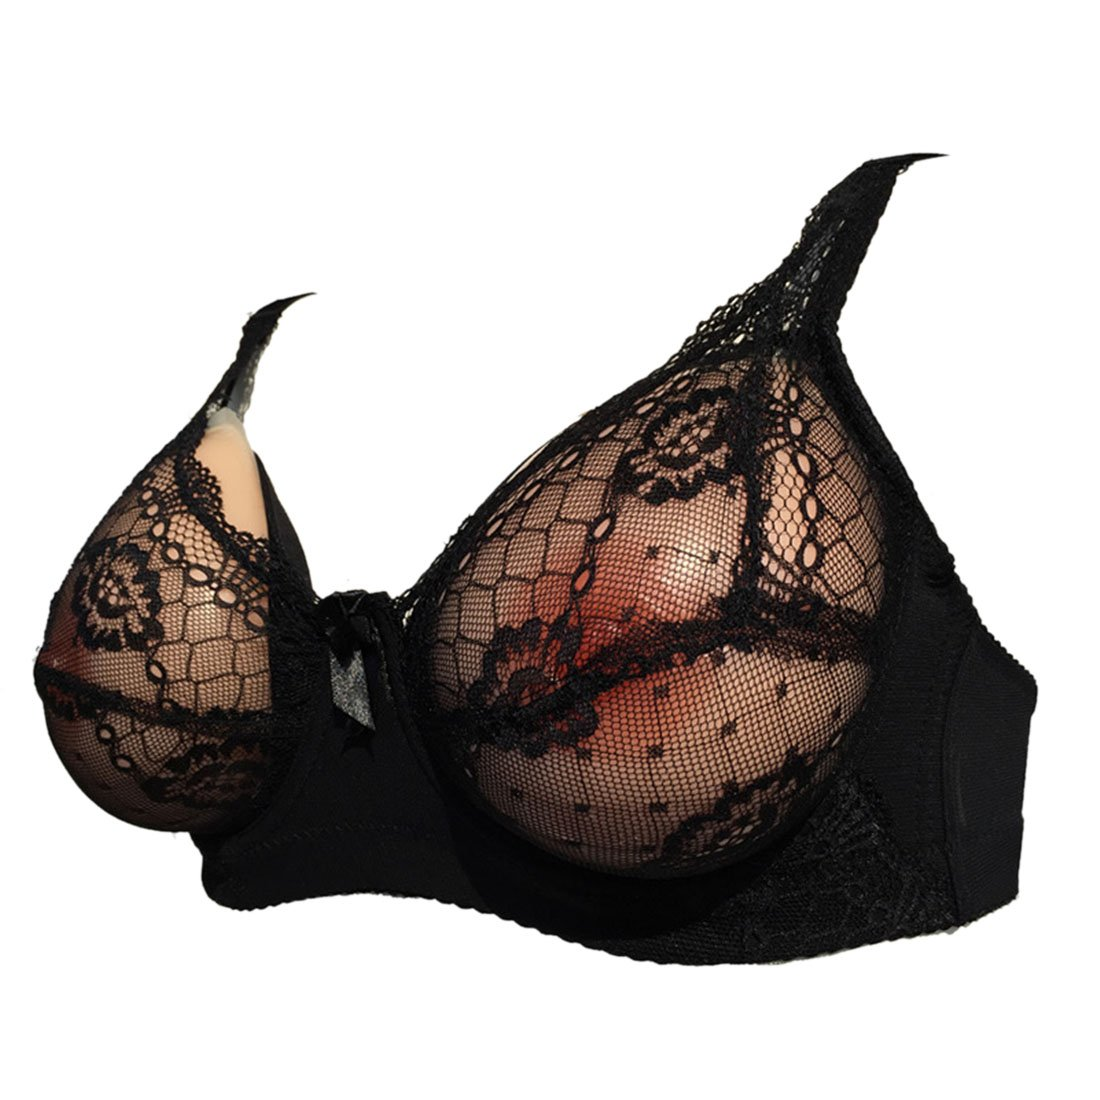 Freahap Lace Breast Form Pocket Bra for Crossdressers Mastectomy YV0146/HFUS